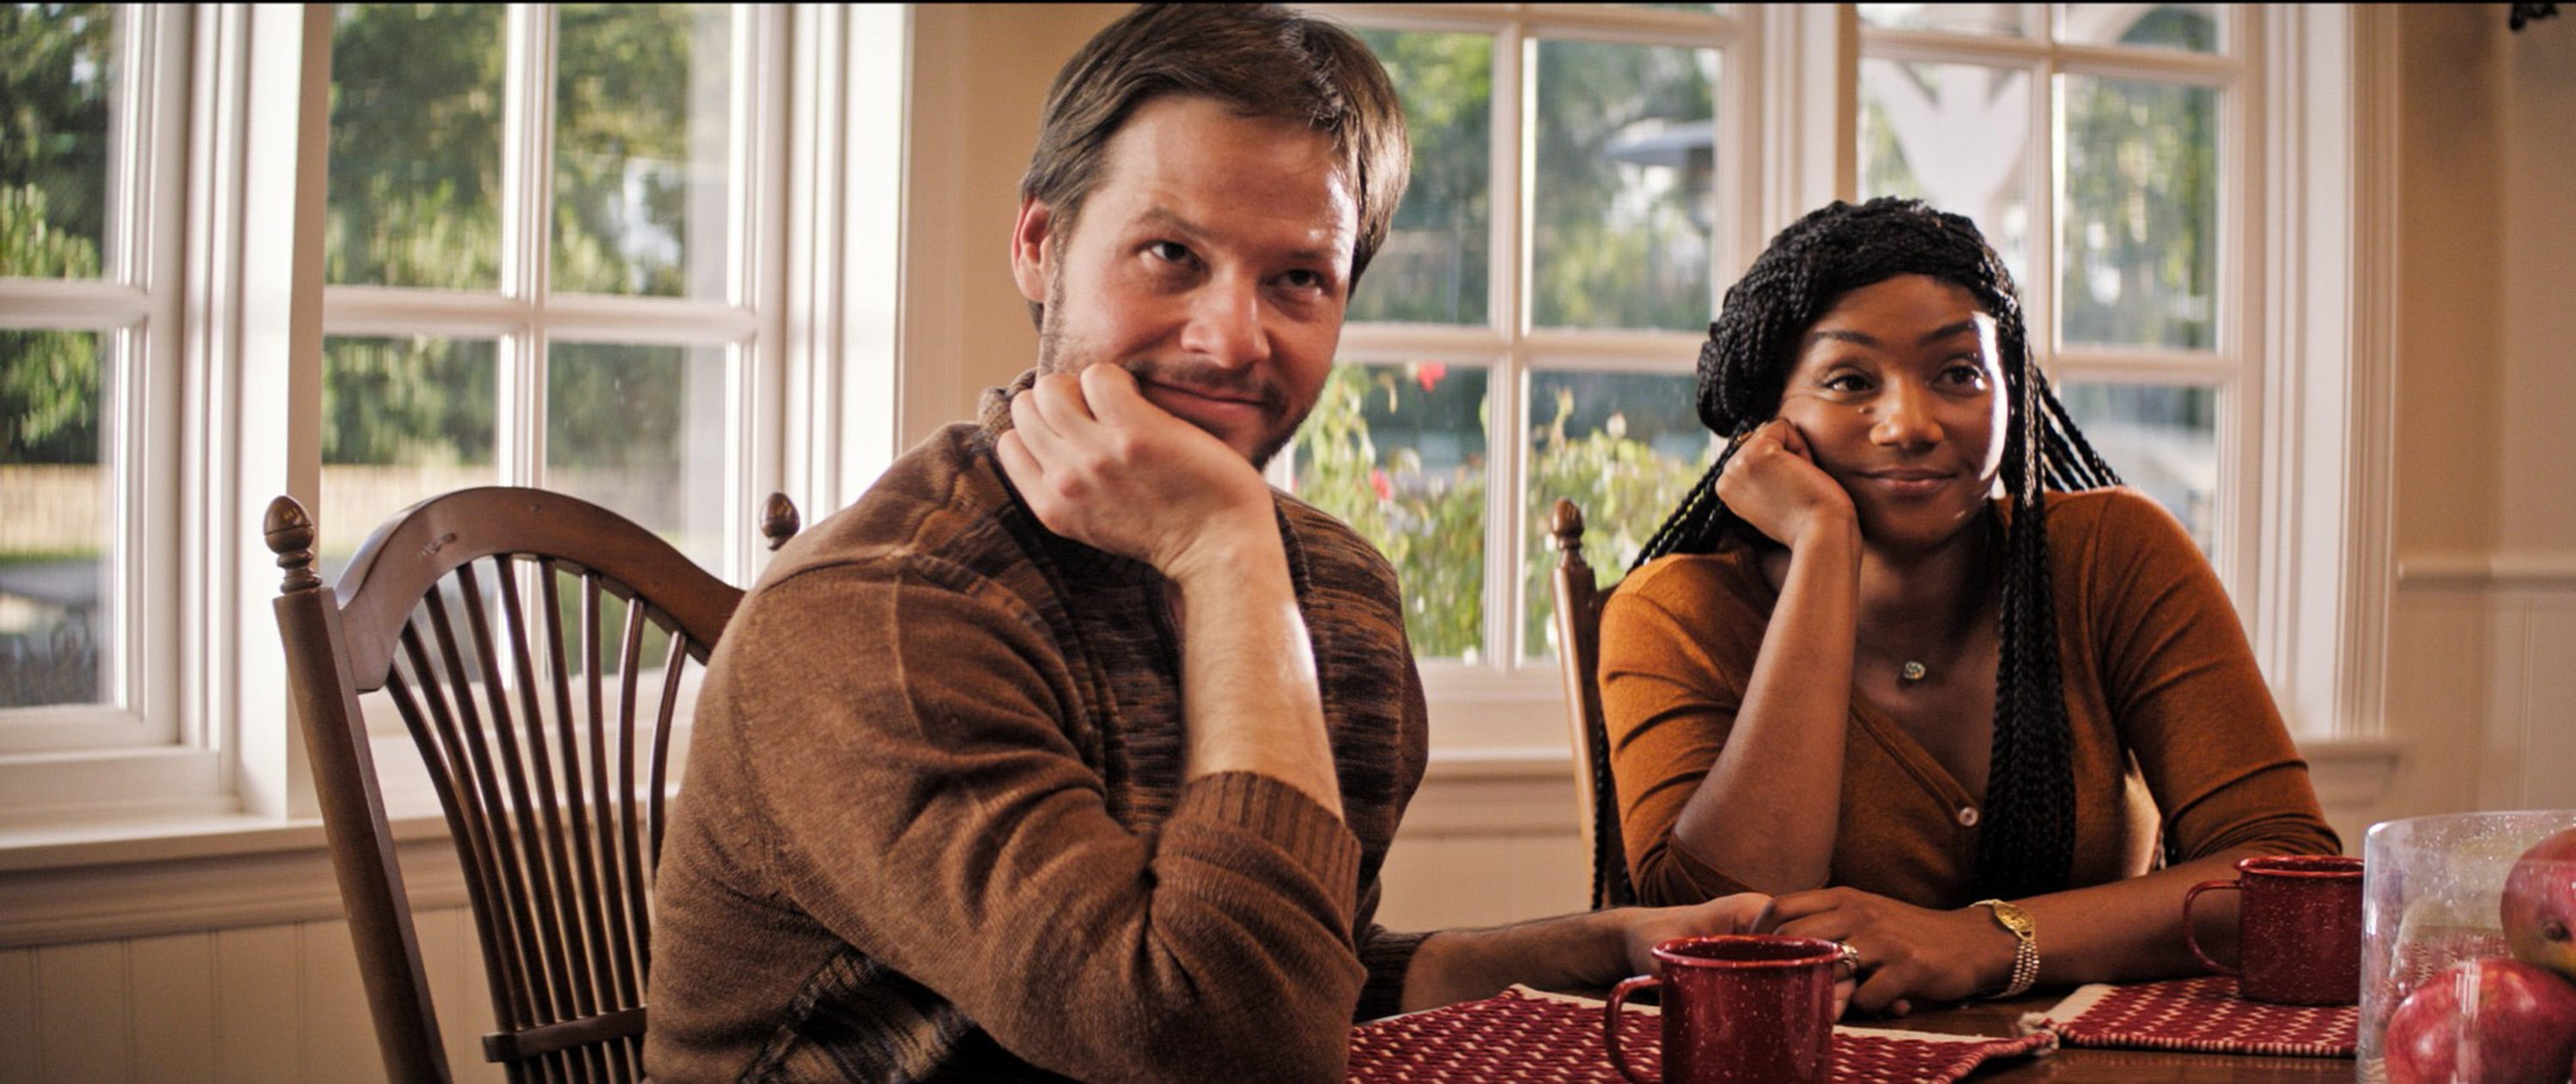 """Ike Barinholtz (left) and Tiffany Haddish play a couple whose trip to a family Thanksgiving goes horribly awry in the dark comedy """"The Oath."""""""